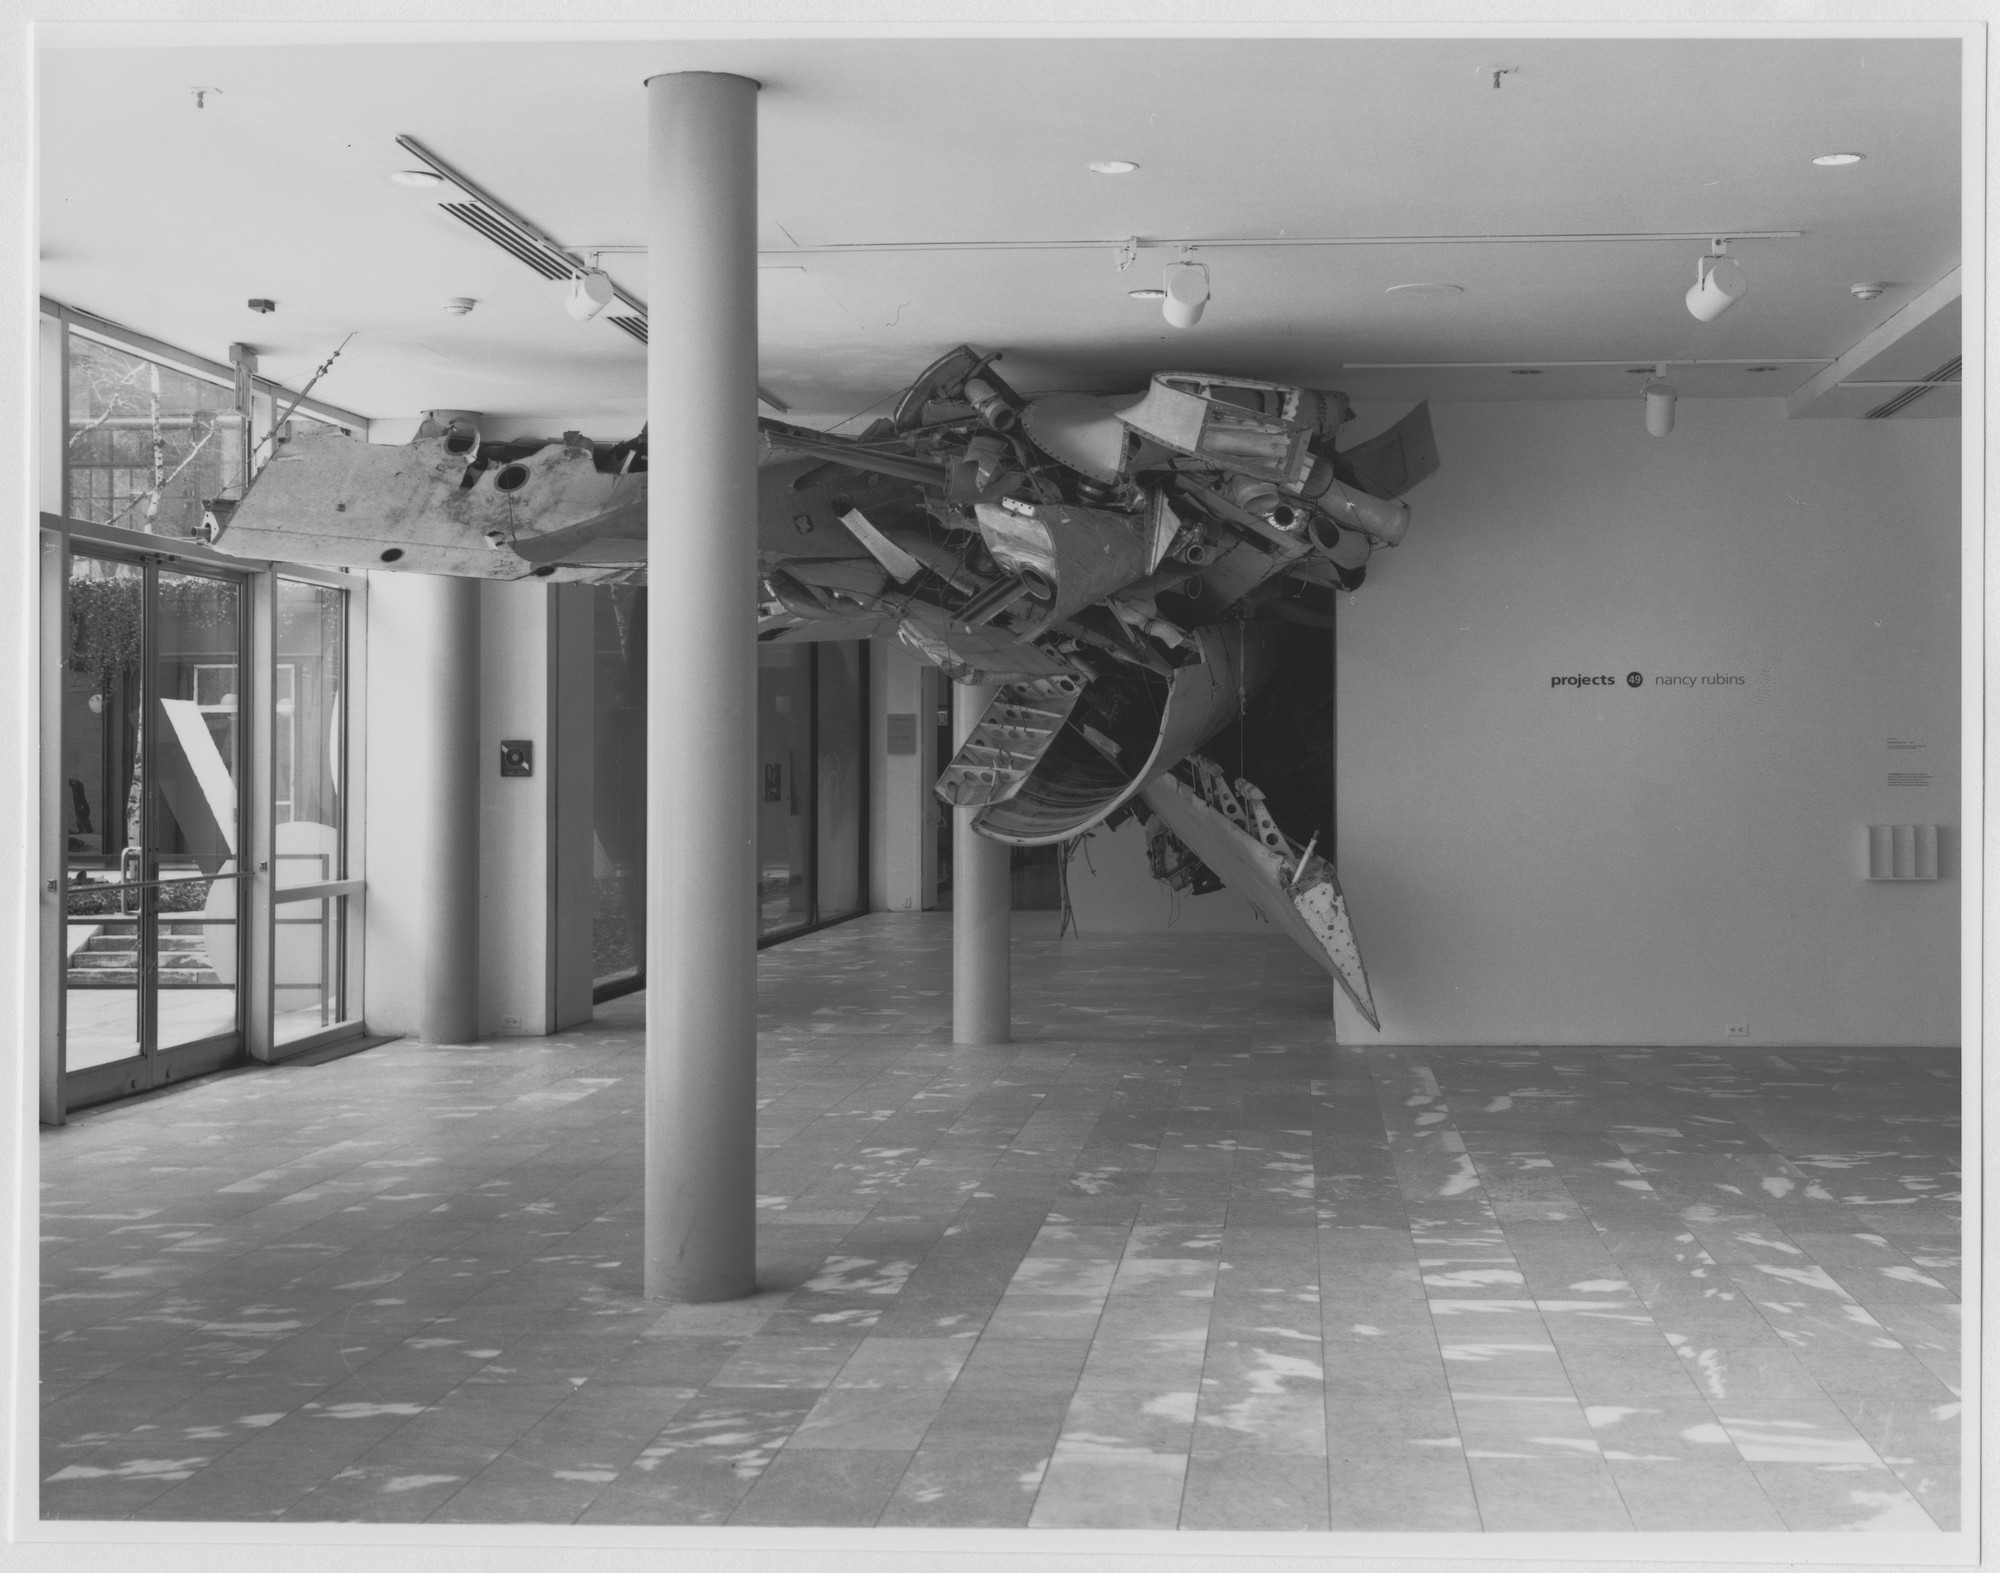 "Installation view of the exhibition, ""Projects 49: Nancy Rubins"" January 24(26), 1995–March 14, 1995. Photographic Archive. The Museum of Modern Art Archives, New York. IN1705.1. Photograph by Mali Olatunji."